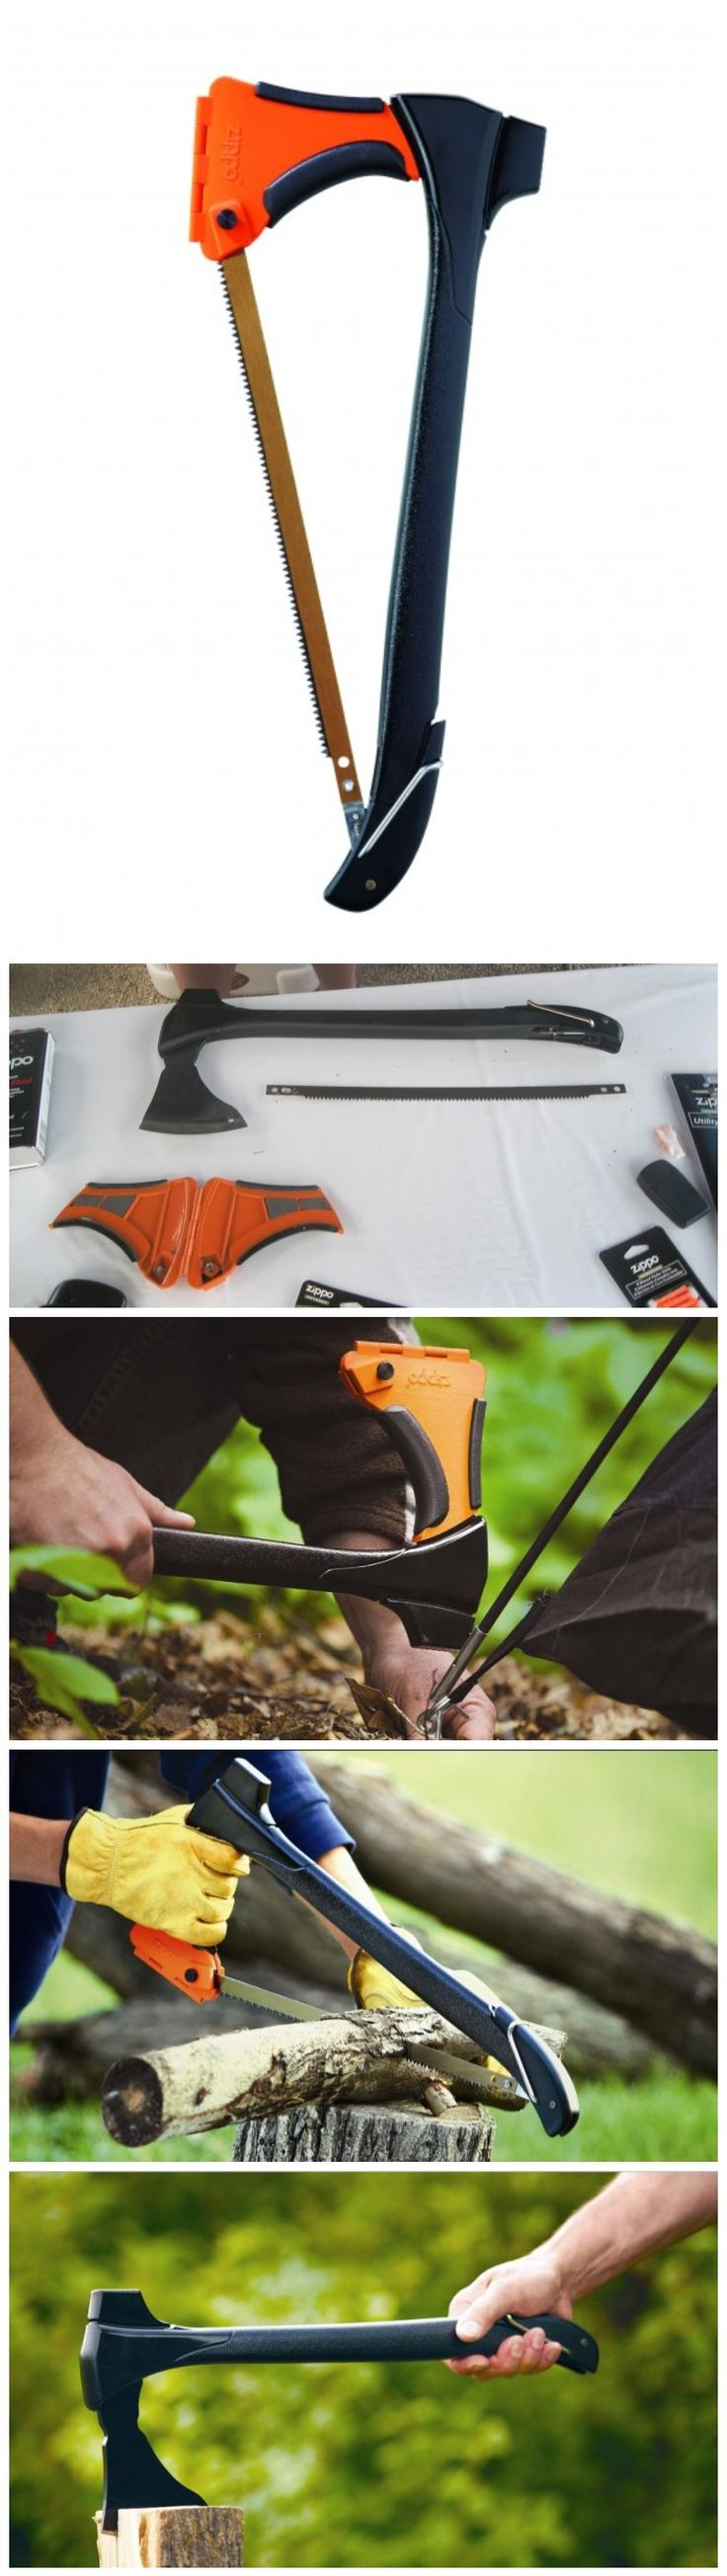 Zippo's 4-in-1 Woodsman combines a hatchet, saw, mallet, & tent stake puller; retails for $80. Reviewed by Popular Mechanics. I want it